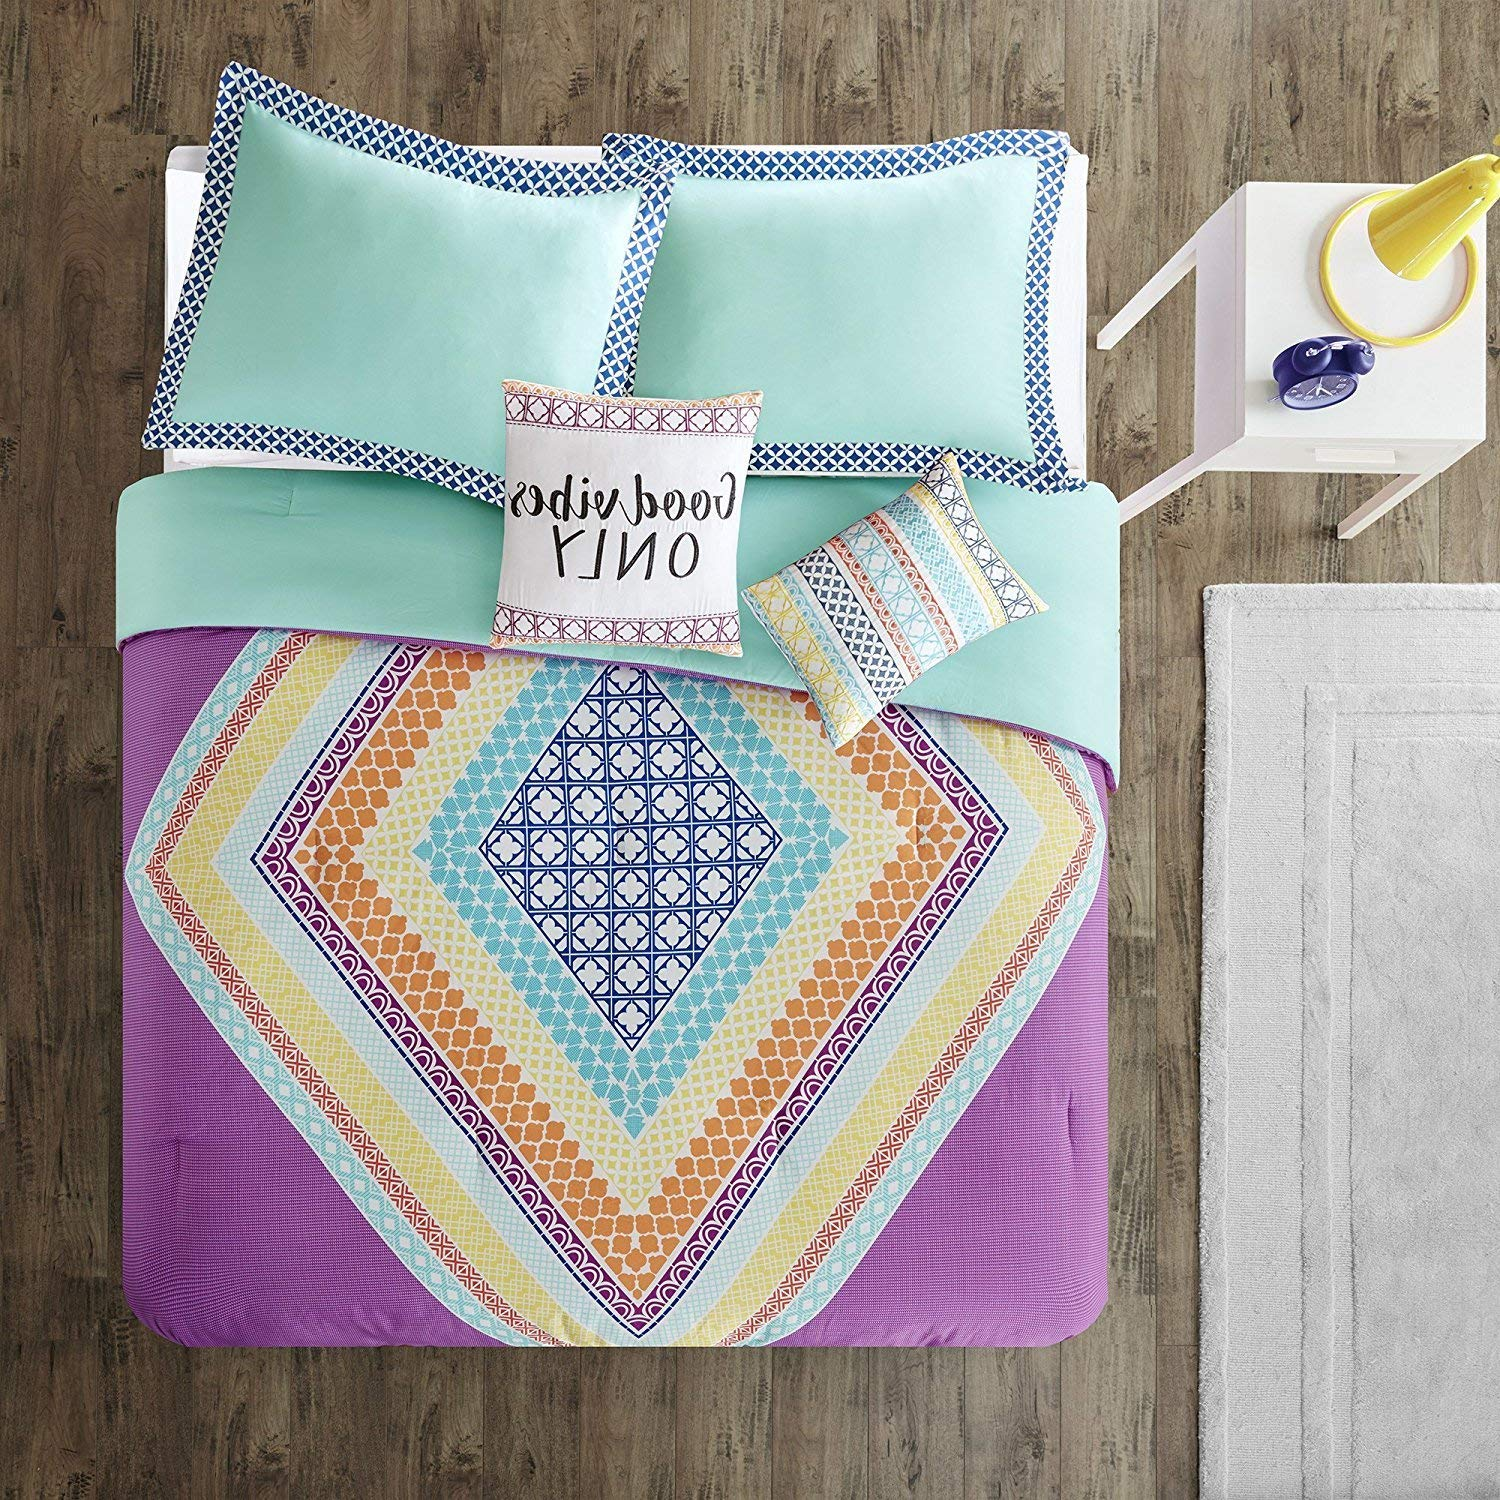 MS 5pc Purple Teal Orange Yellow Good Vibes Boho Chic Themed Comforter Full Queen Set, Vibrant Oversized Diamond Motif Theme Pattern, Pastel Bohemian Motifs Bedding, Microfiber